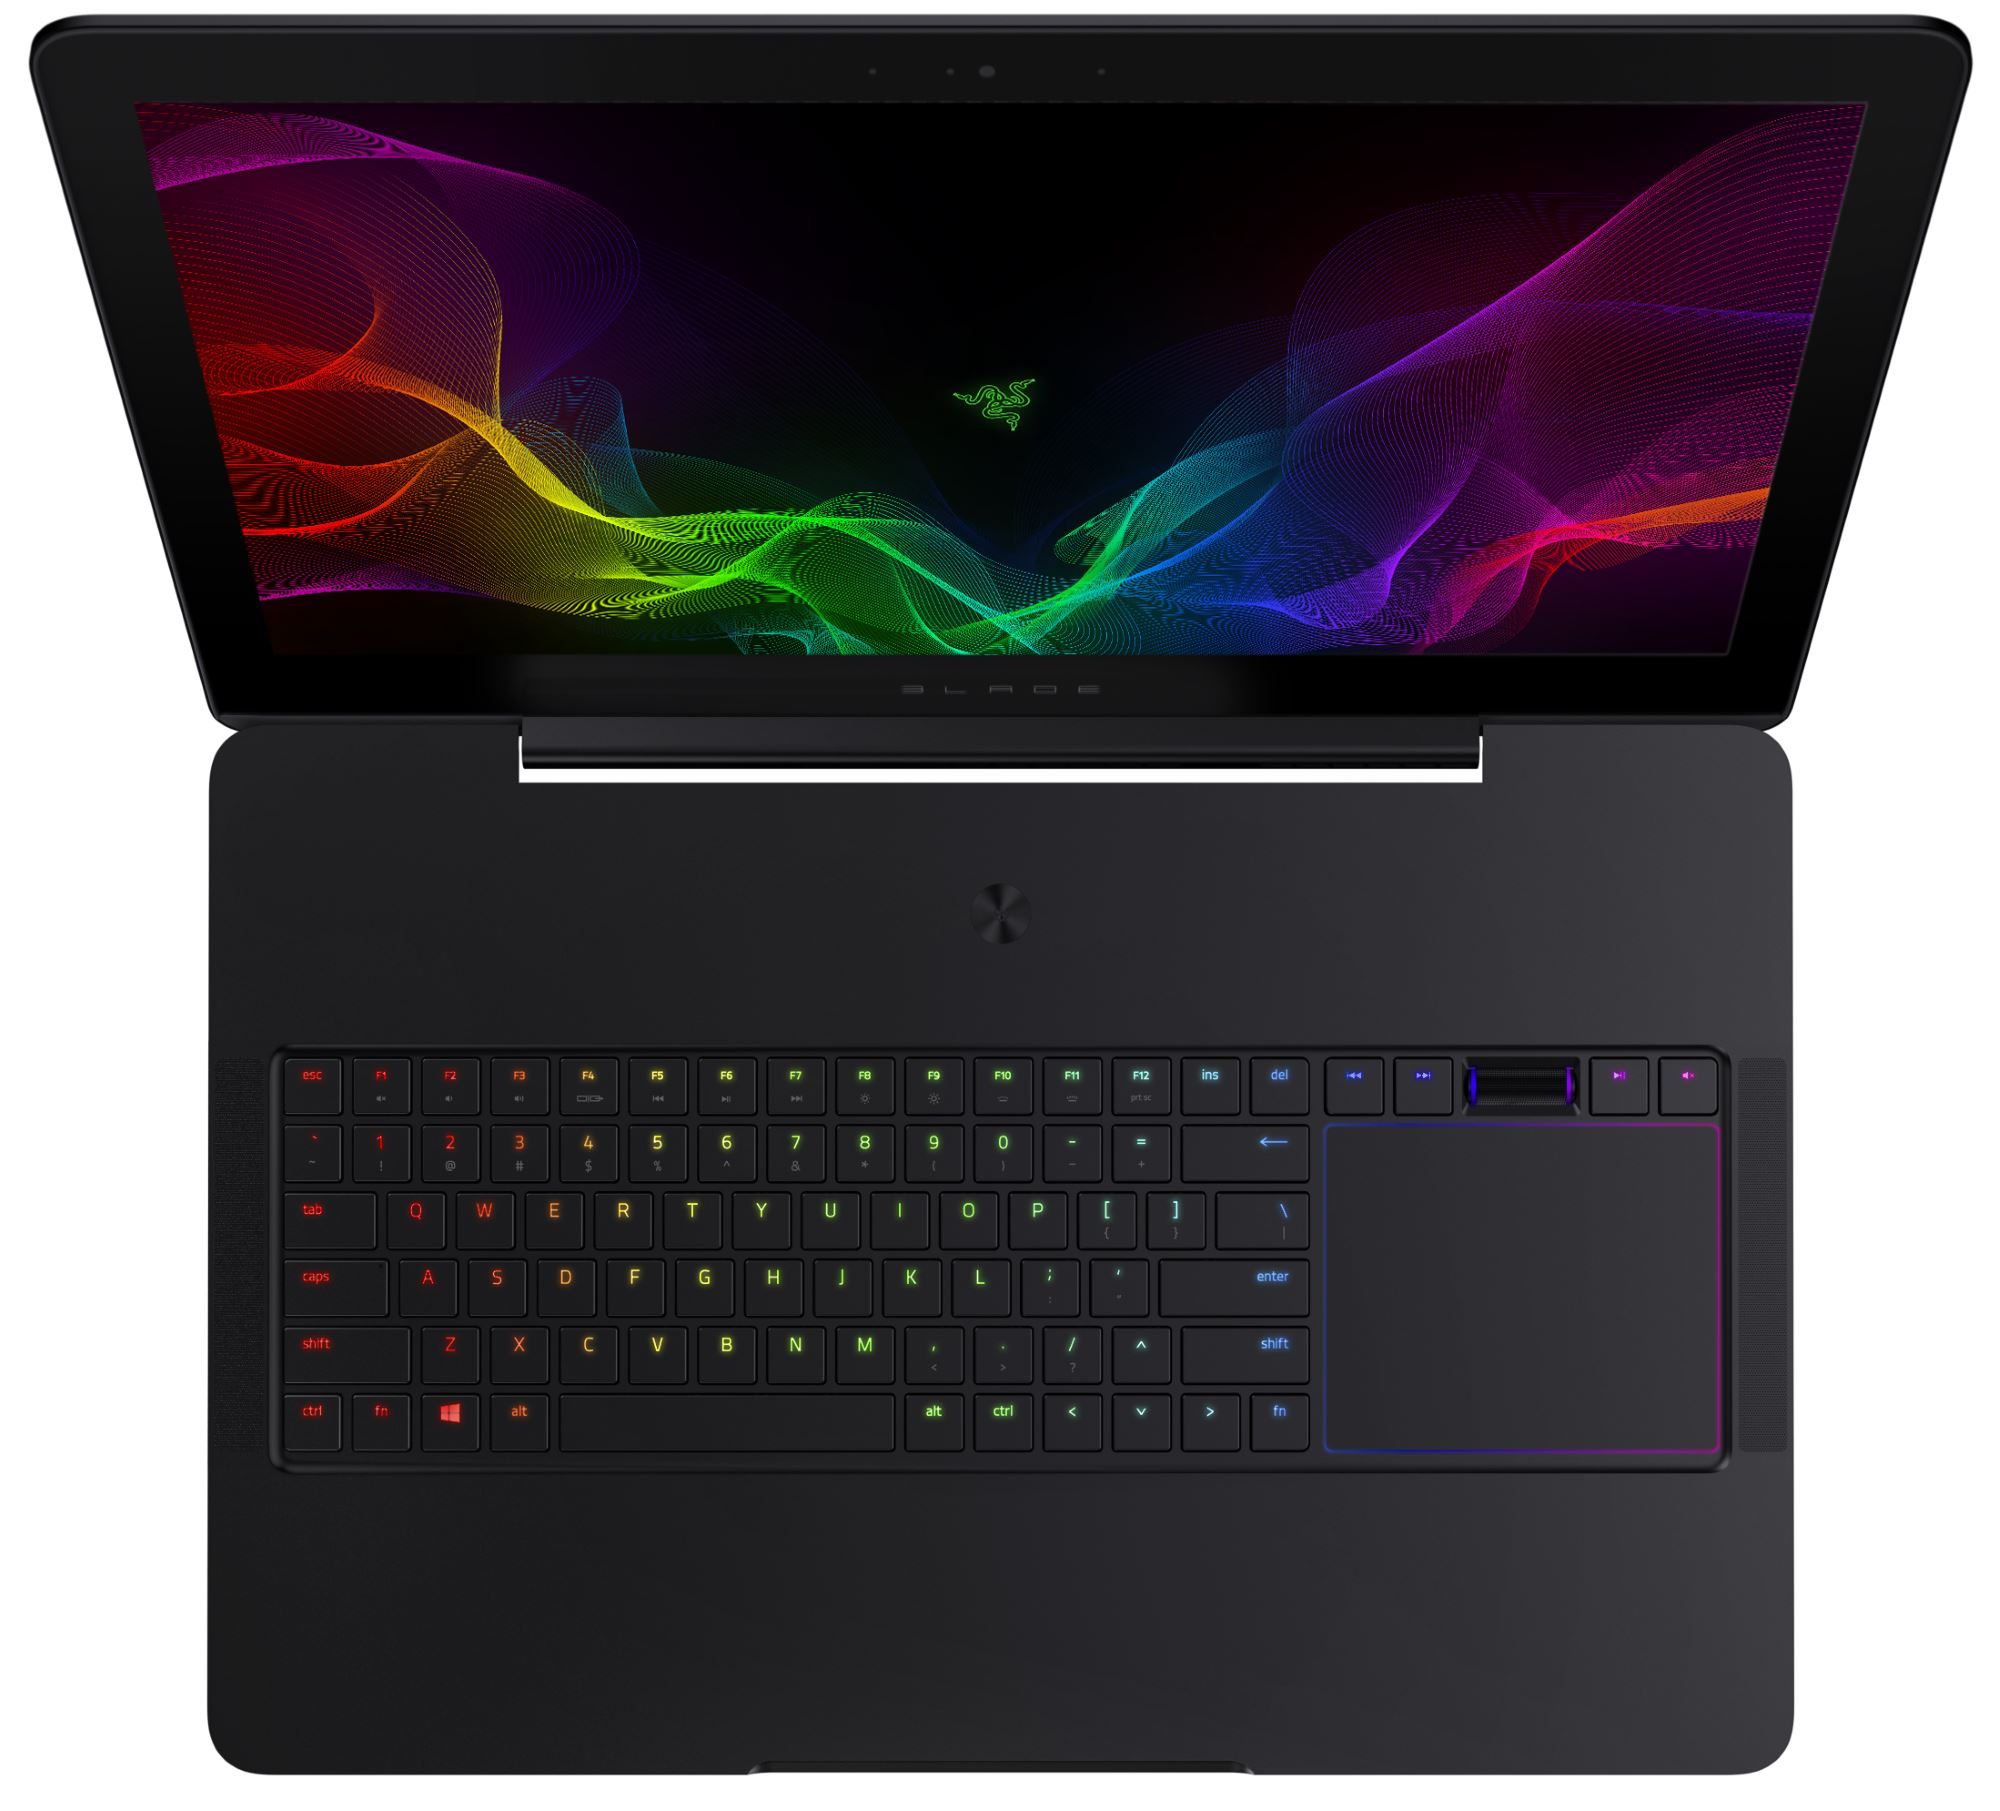 Razer Blade Pro Full HD makes style and power attainable by mortals